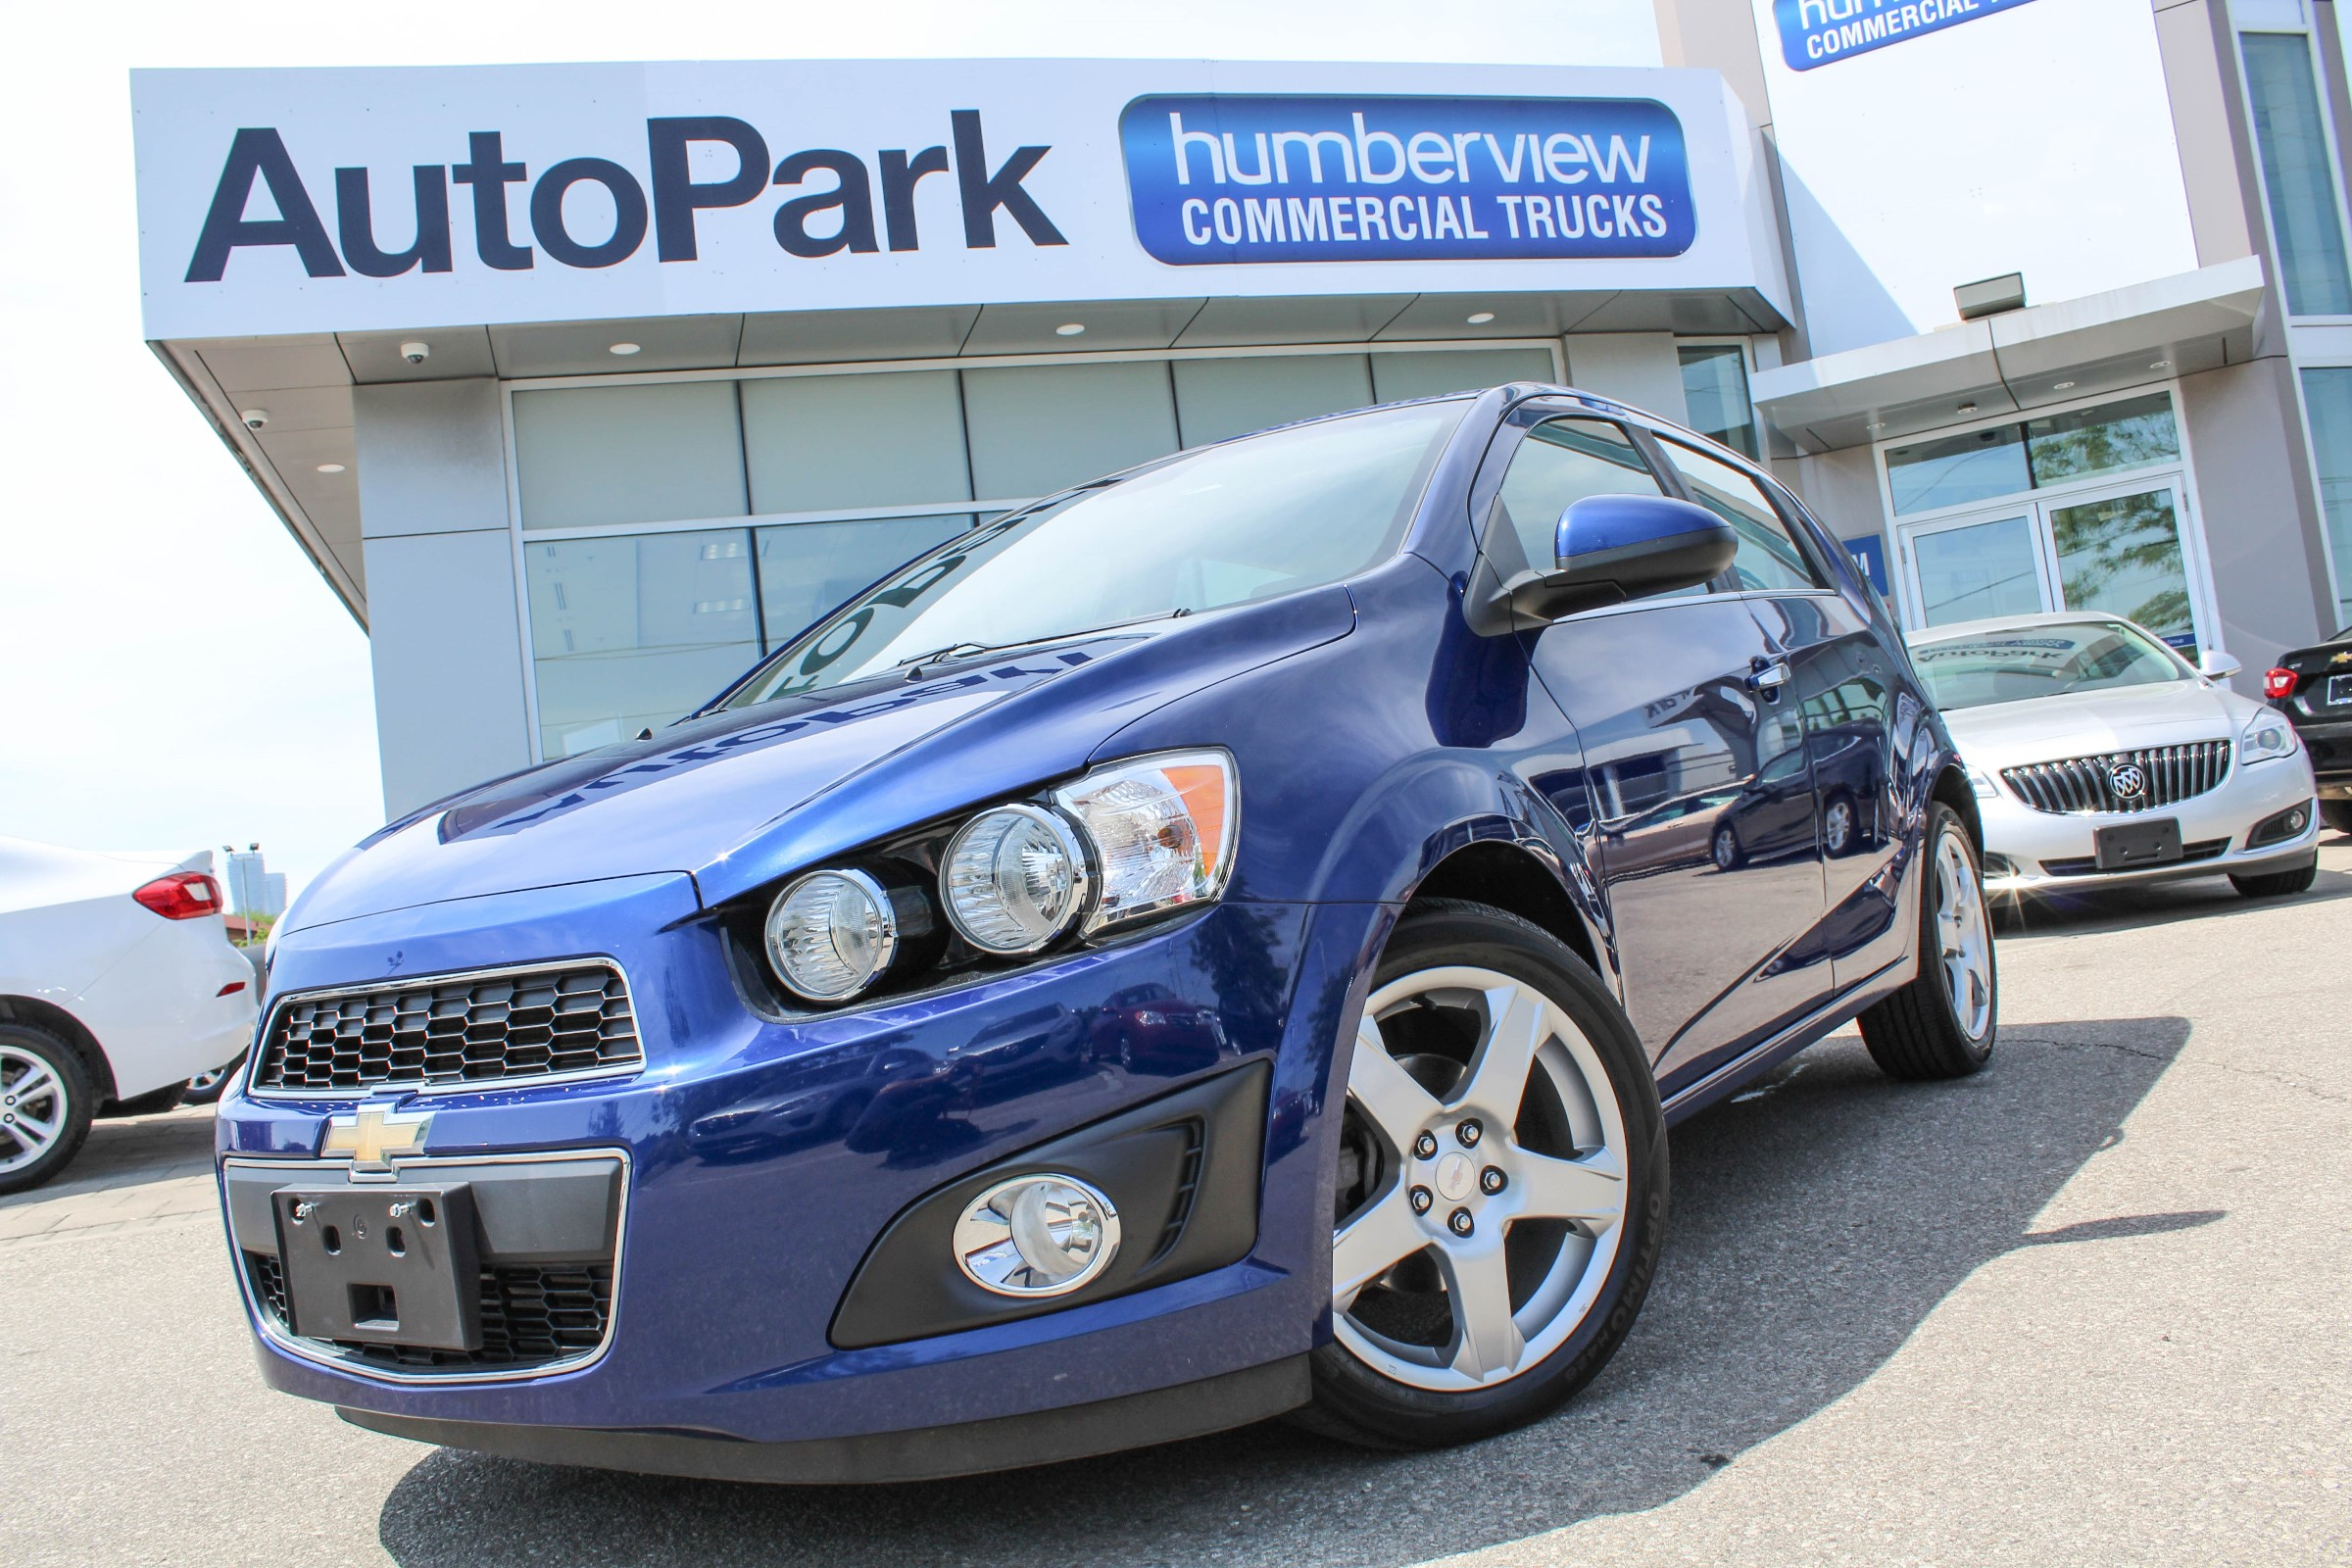 2012 Chevrolet Sonic For Sale in Toronto, ON - CarGurus